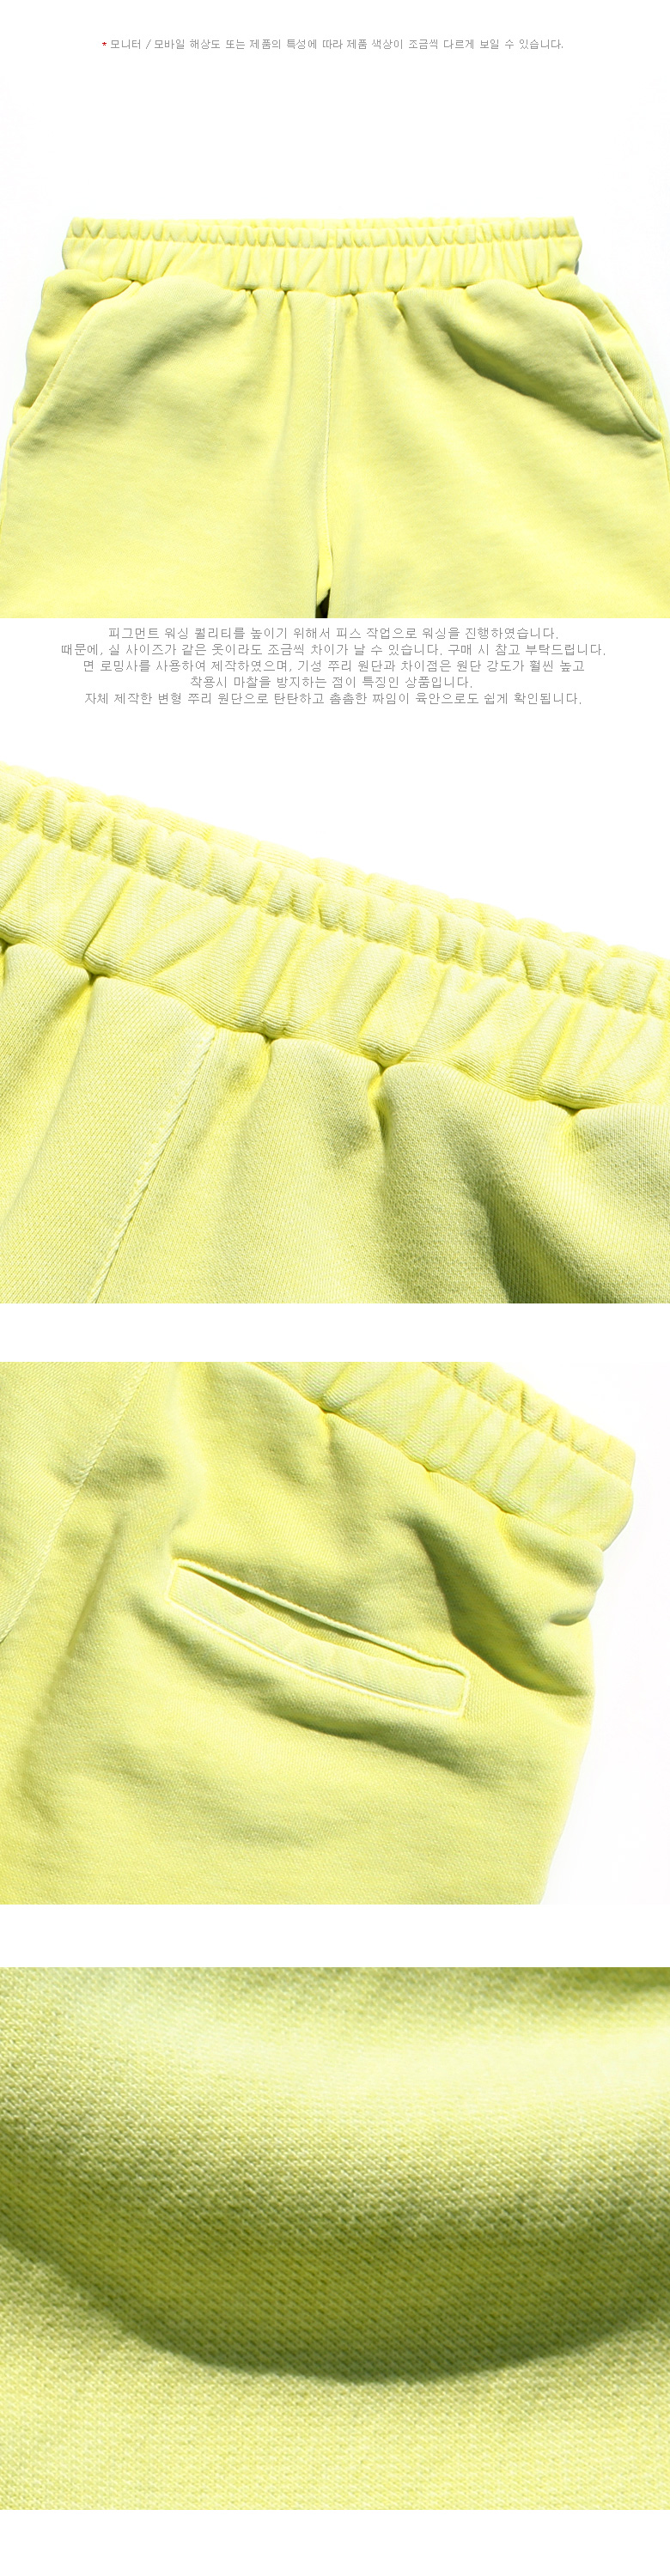 4267_detail_yellow_sm_02.jpg